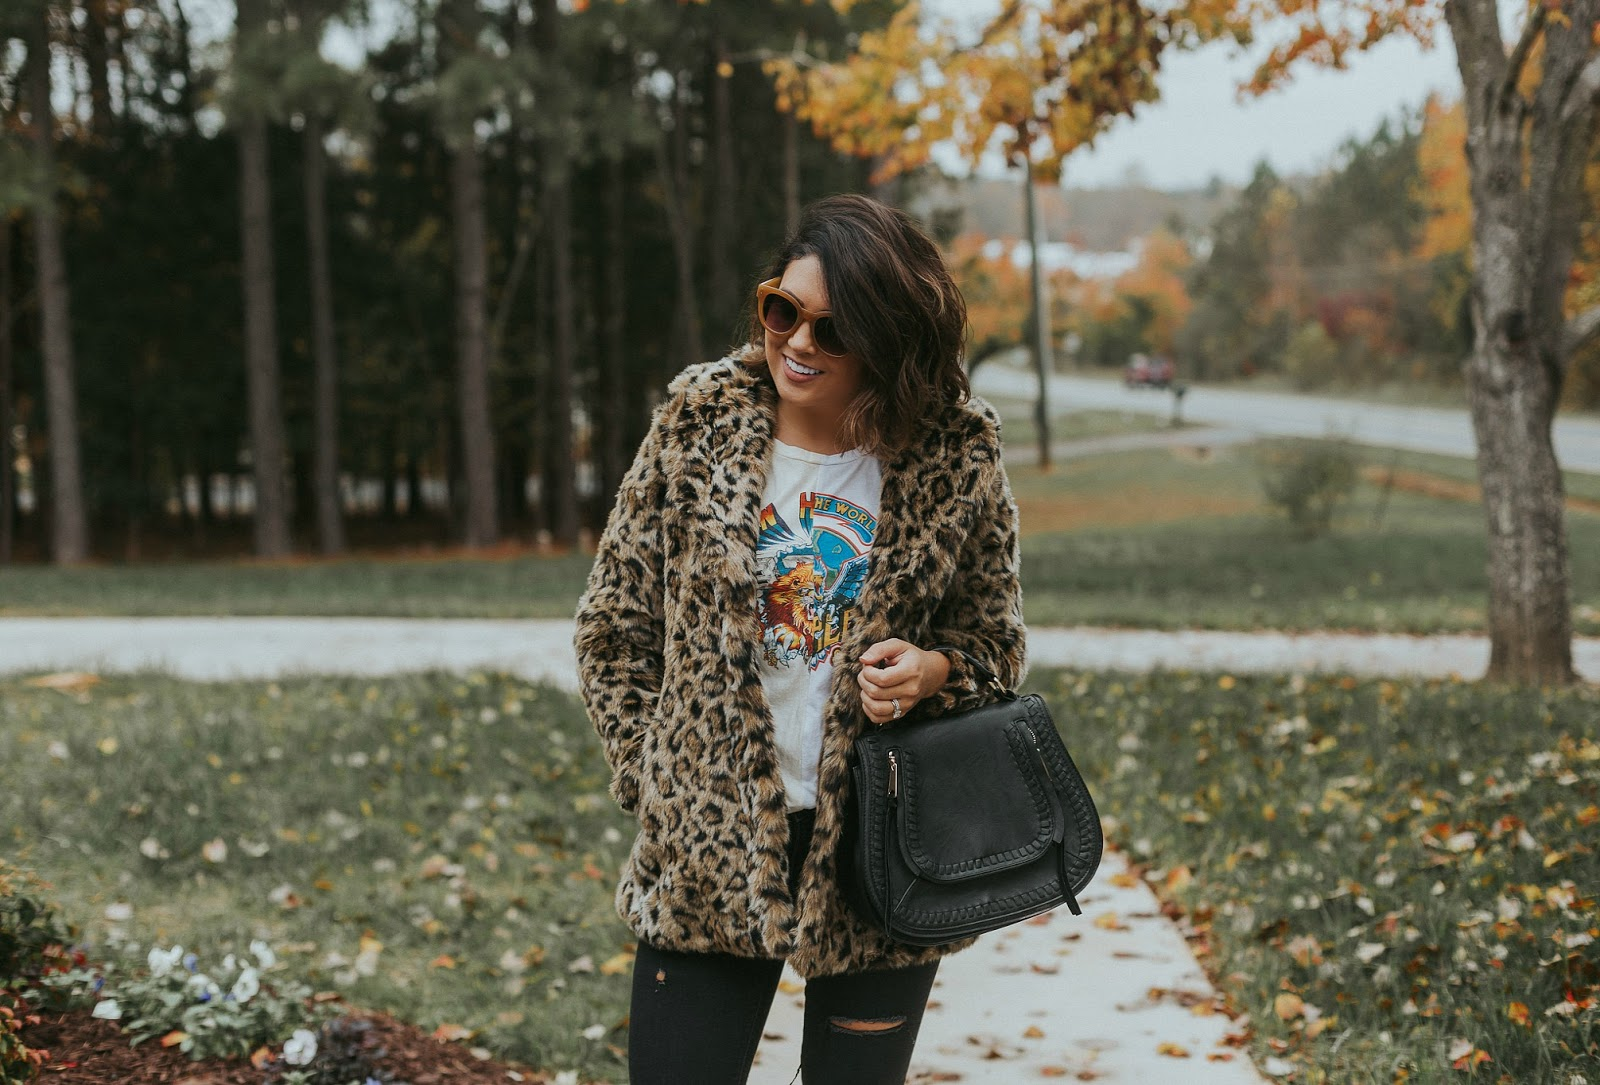 faux leopard coat, band tee, rebecca minkoff saddle bag, life and messy hair, samantha brooke, xo samantha brooke